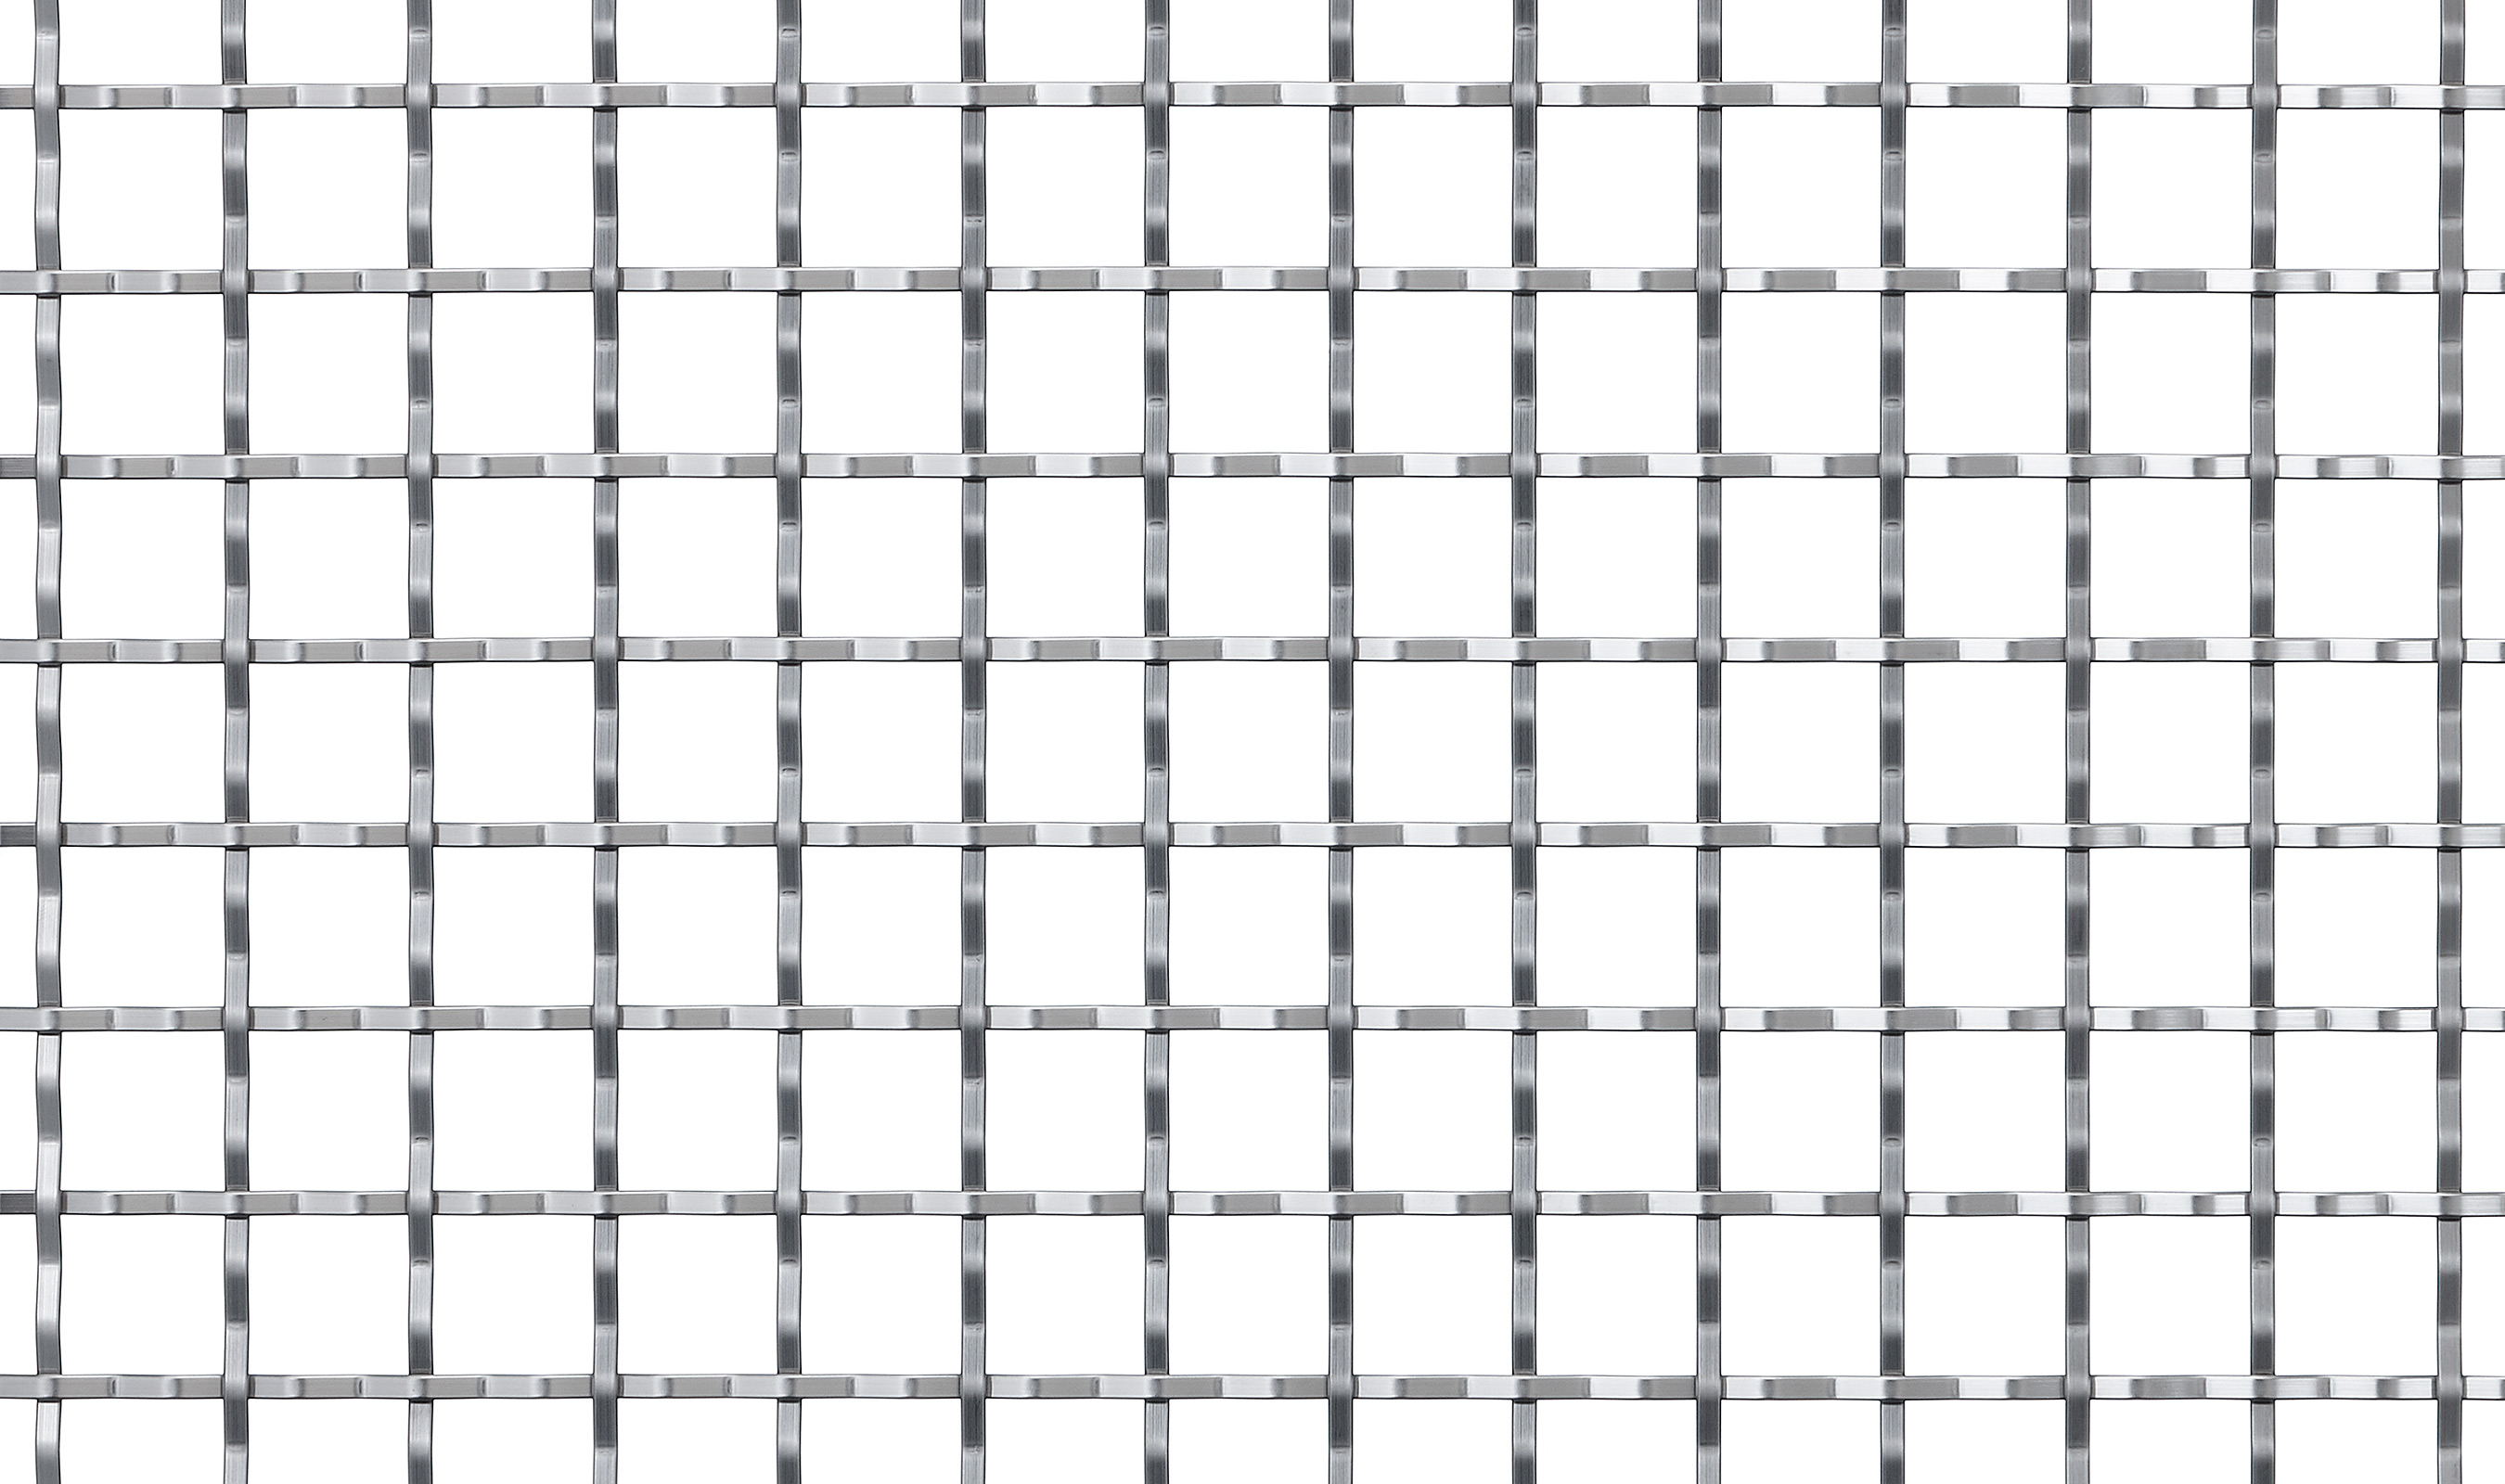 S-40 Angle in Stainless Woven Wire Mesh